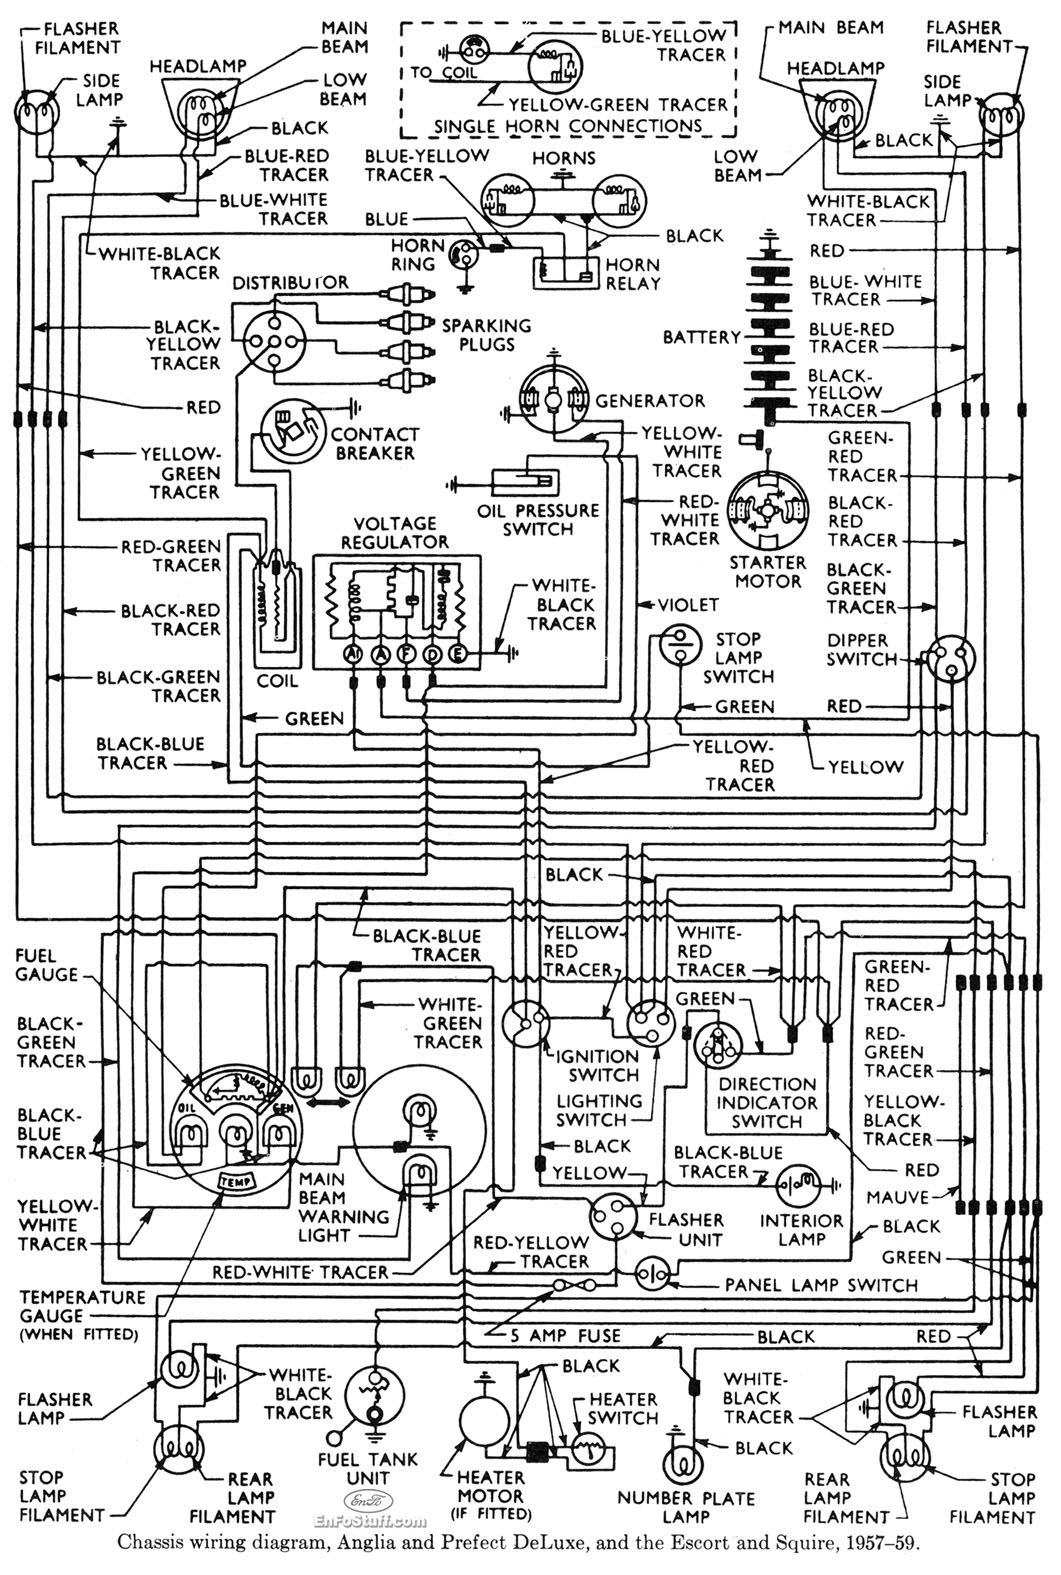 ford anglia prefect escort squire 1957 59 wiring diagram 1955 electrical wiring schematic suppliment 110 41 5 readingrat net 1957 thunderbird wiring diagram at crackthecode.co